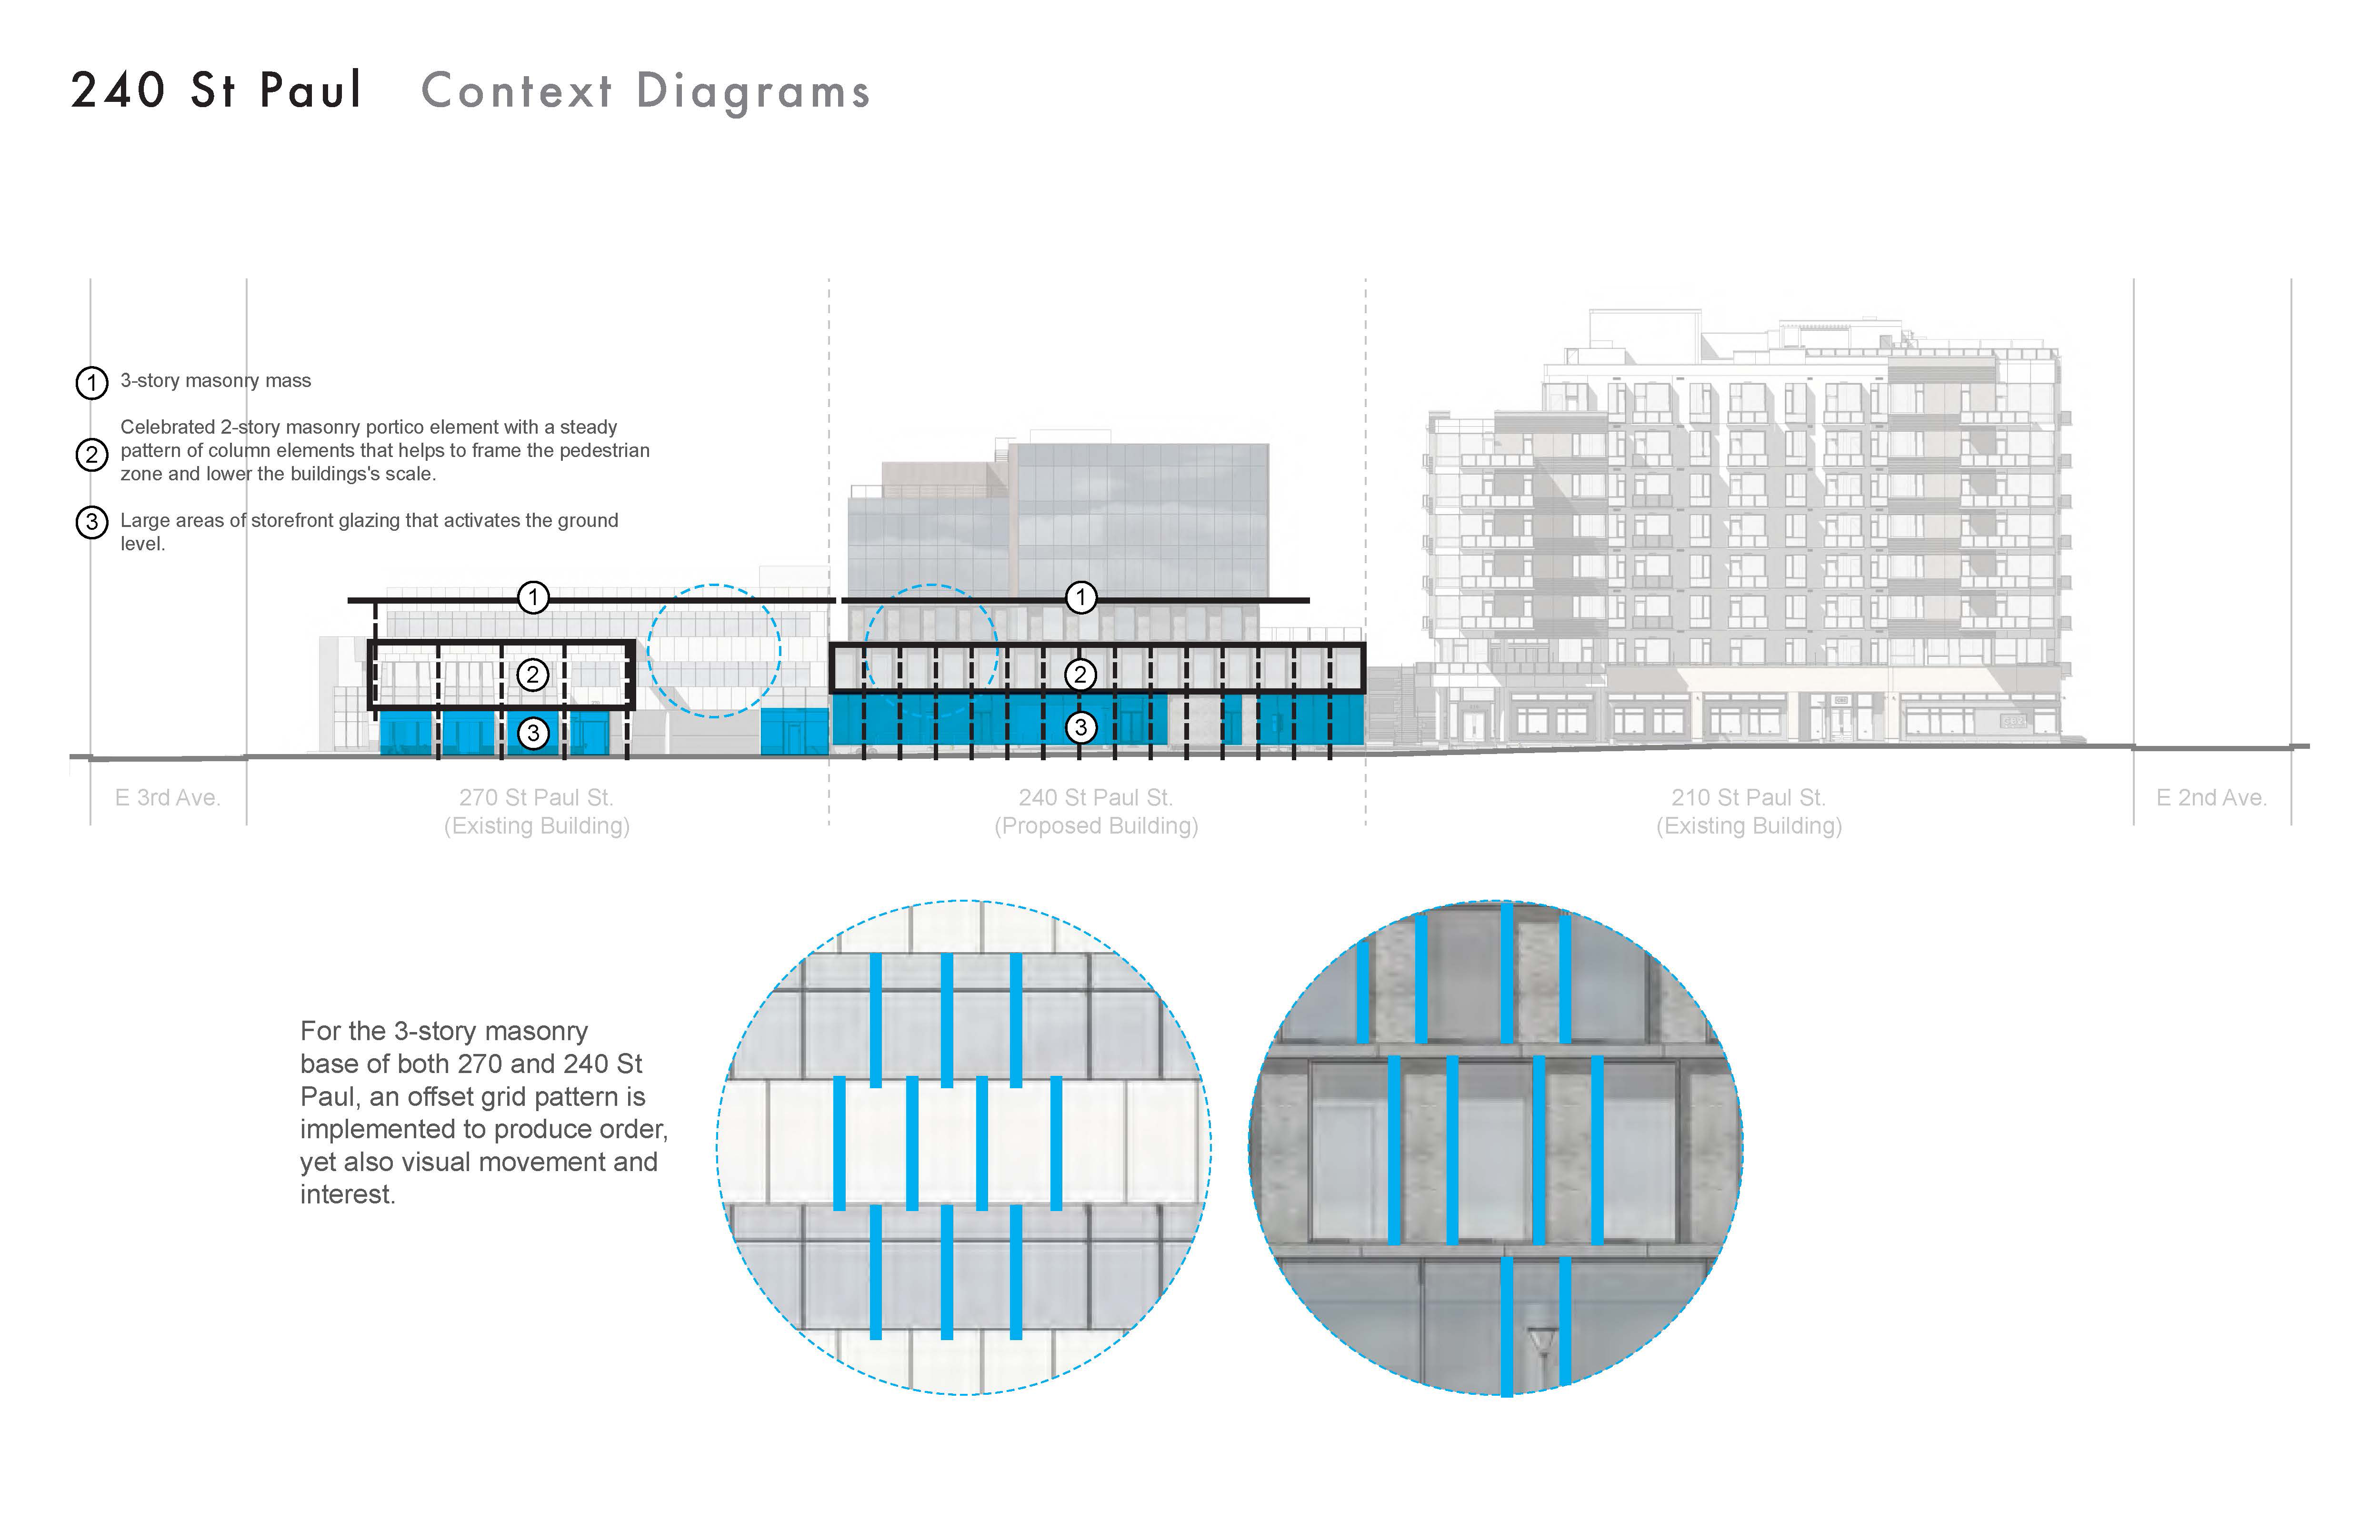 240 St Paul Context Diagram 1